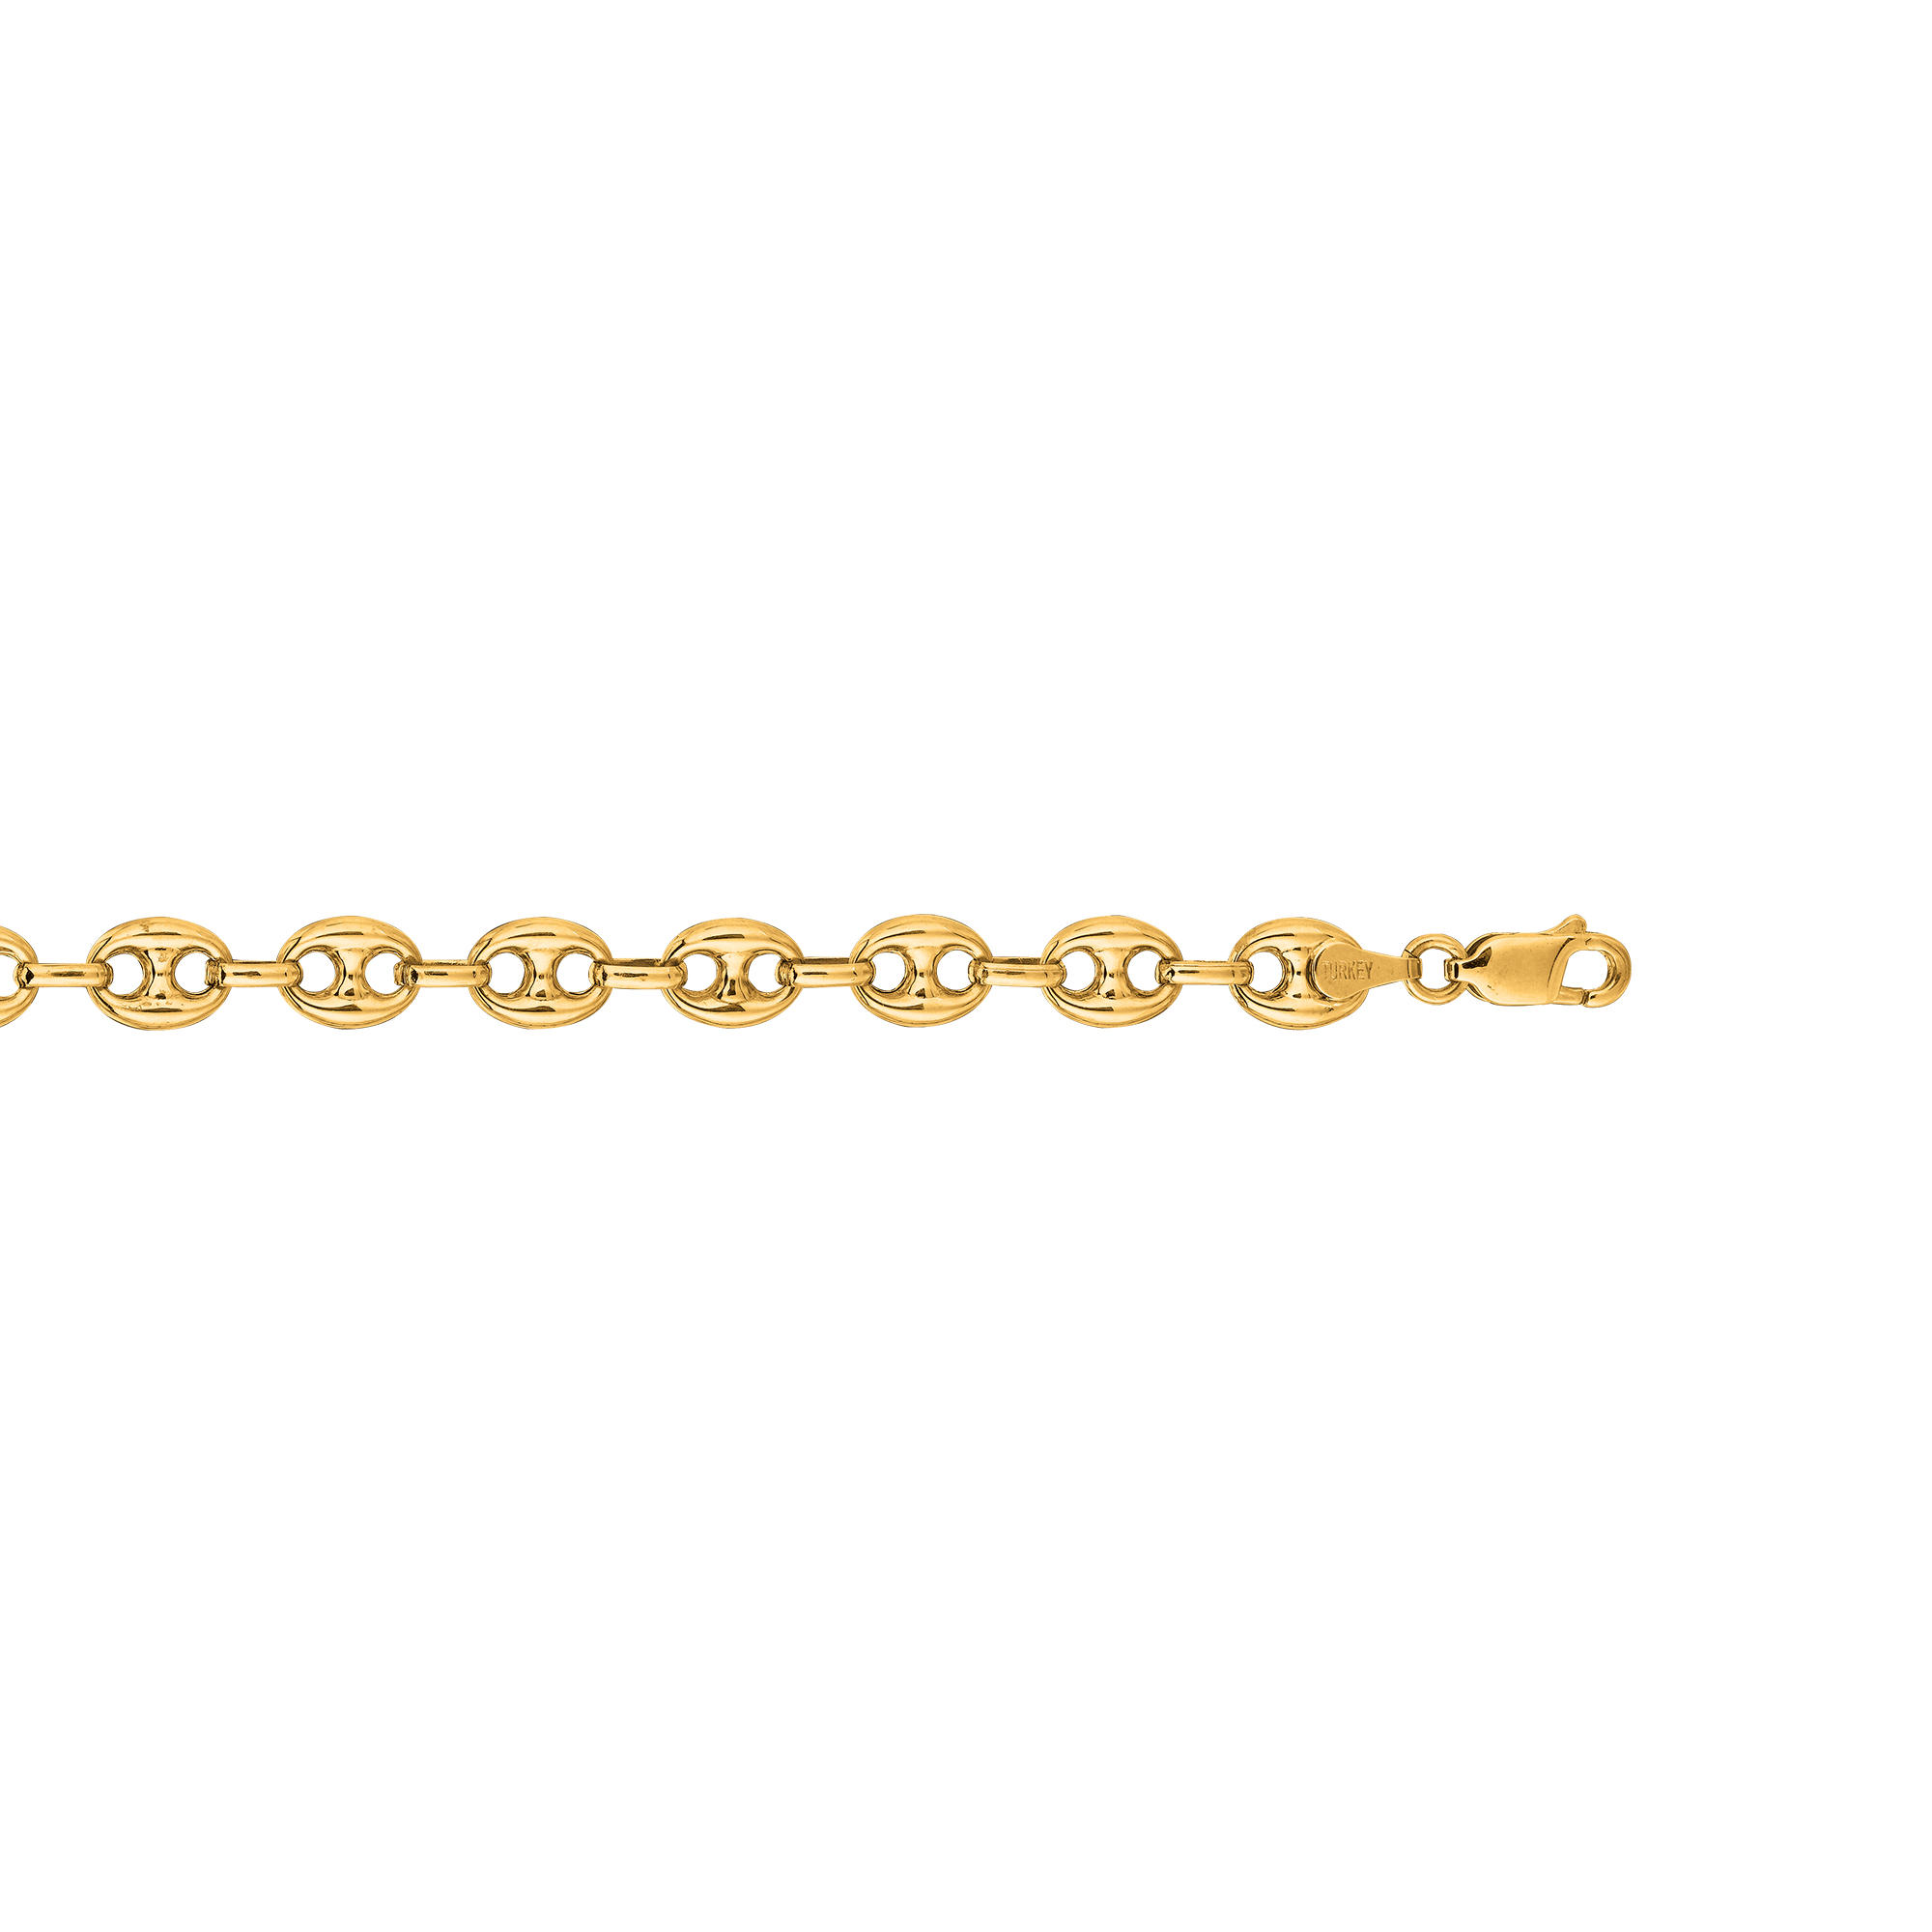 Hollow 14k Gold Gucci Chain For Men & Women Mariner Puffed 11mm Wide